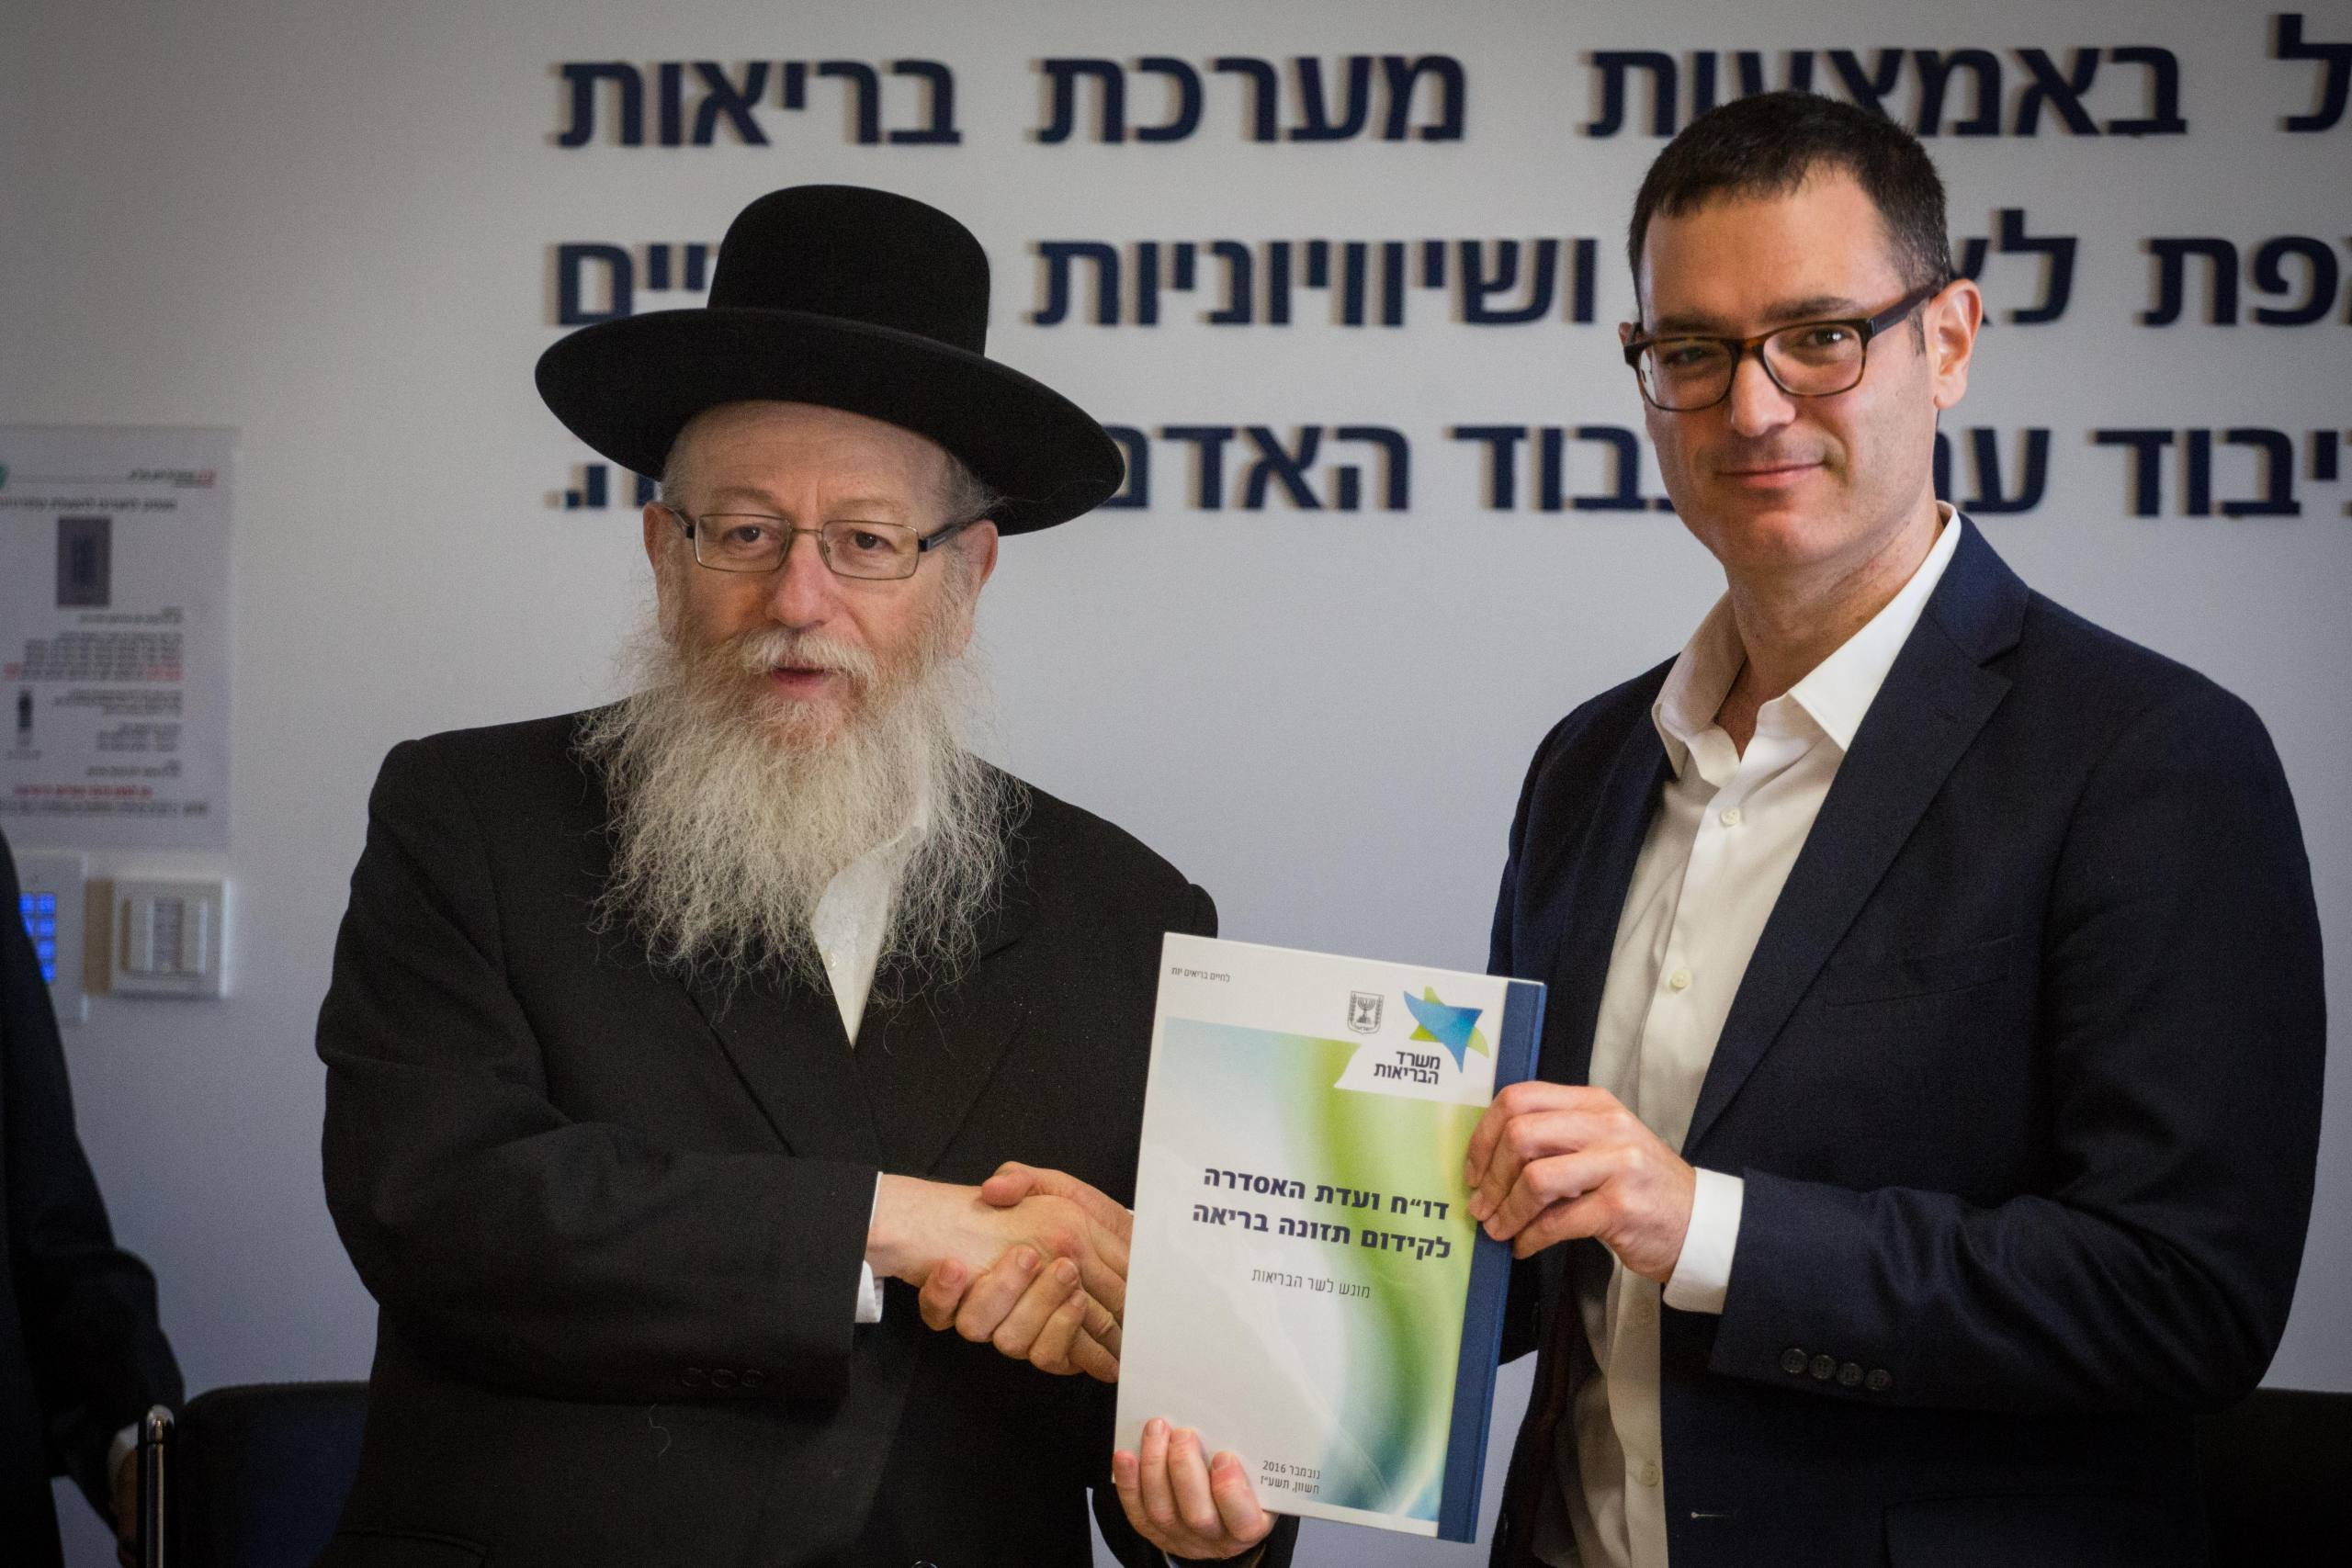 Health Minister Yaakov Litzman and Health Ministry General Manager Moshe Bar Siman Tov at a press conference at the Health Ministry announcing new markings on food products concerning sugar and fat, in Jerusalem, on November 21, 2016. Photo by Hadas Parush/Flash90 *** Local Caption *** שר הבריאות משרד הבריאות סימונים מוצרים אוכל מסיבת עיתונאים מנכל משה בר סימן טוב יעקב ליצמן